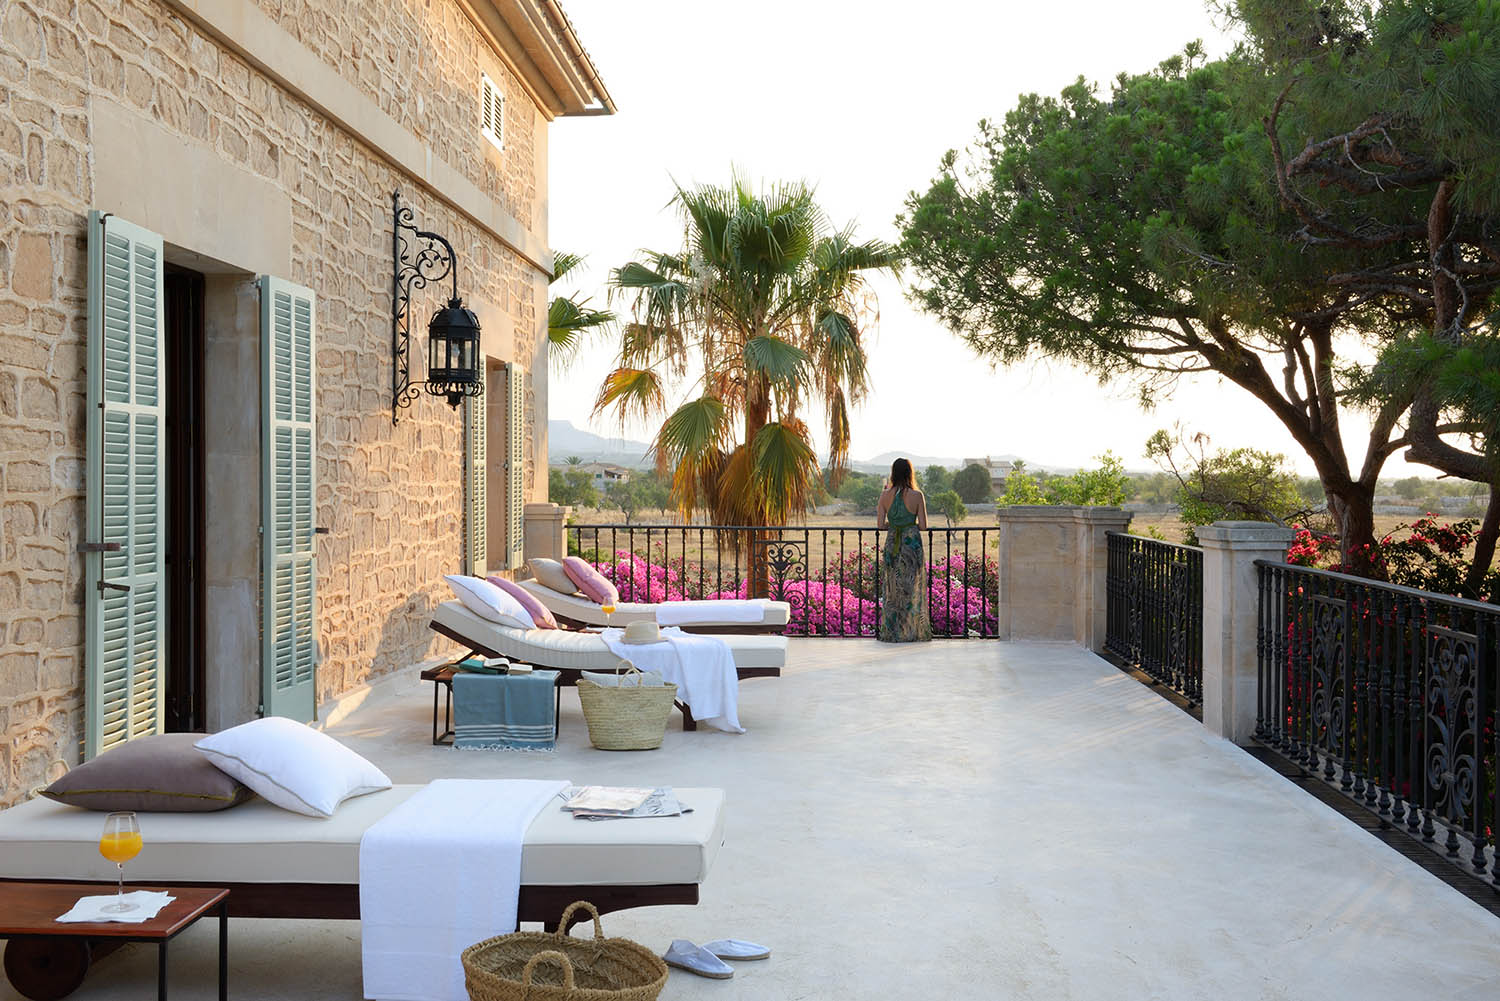 Cal reiet a new hotel in mallorca with great rooms for families for Arredare un terrazzo fai da te